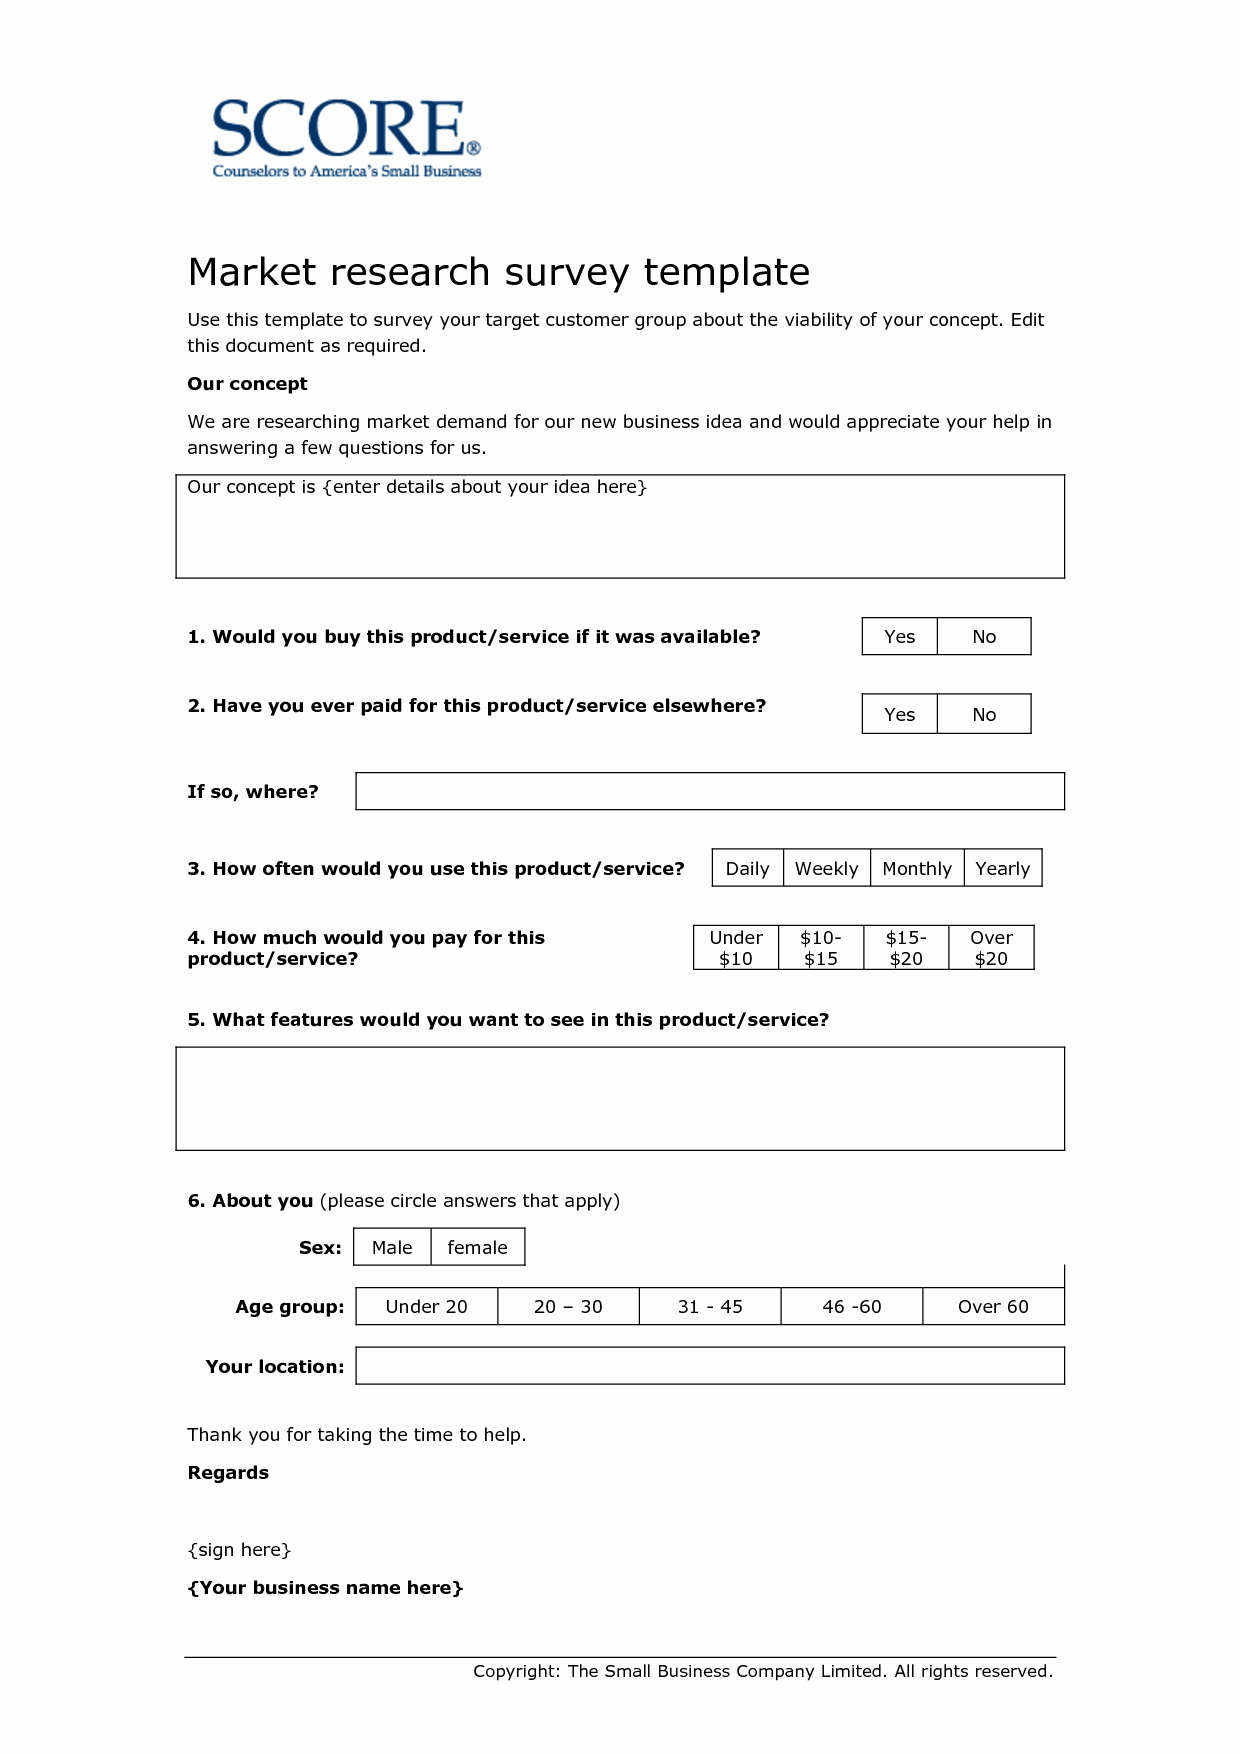 Market Research Survey Template Fresh Template Questionnaire for Research